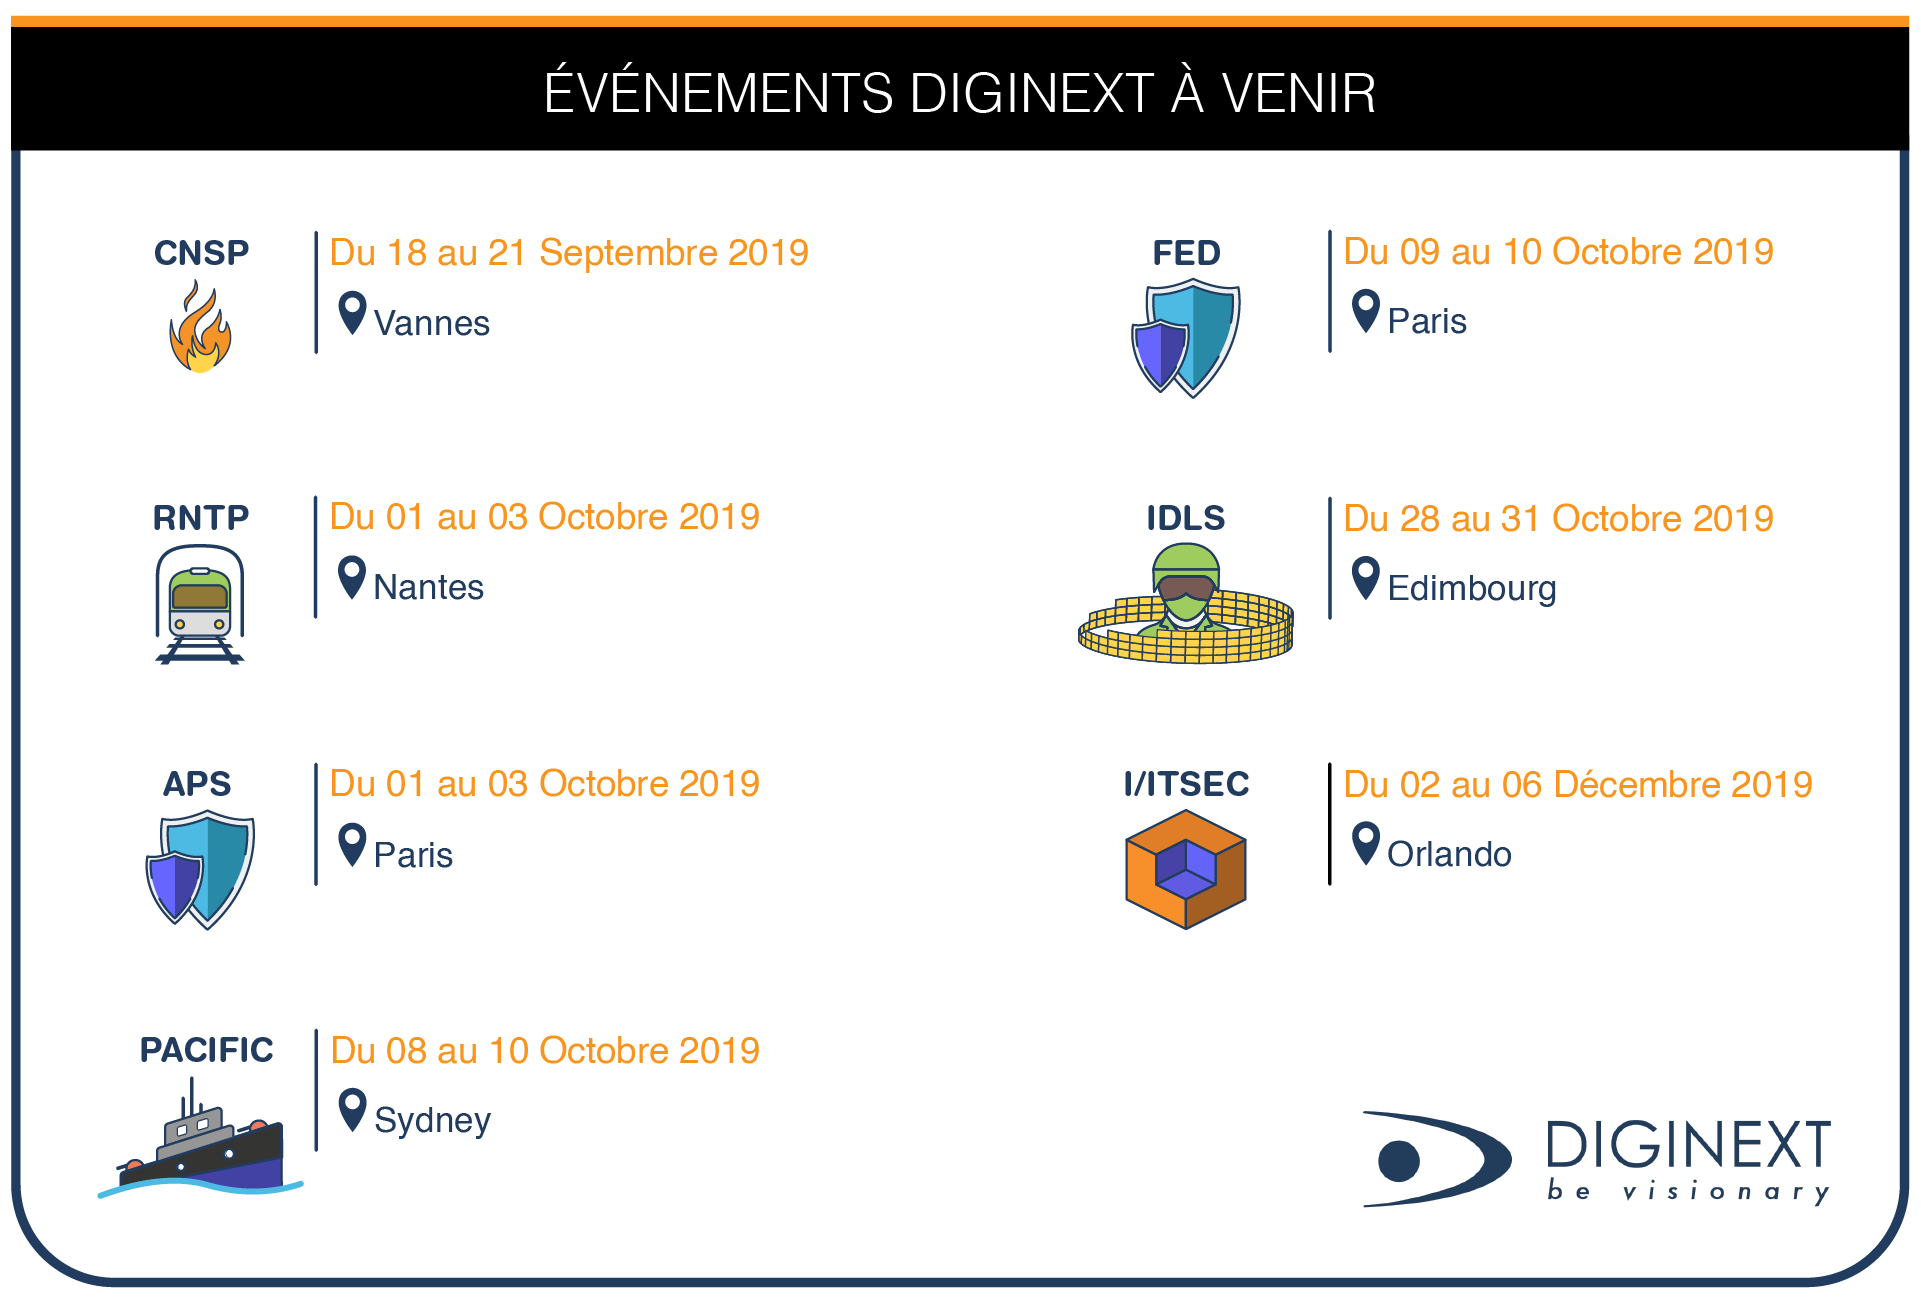 DIGINEXT événements à venir 2019